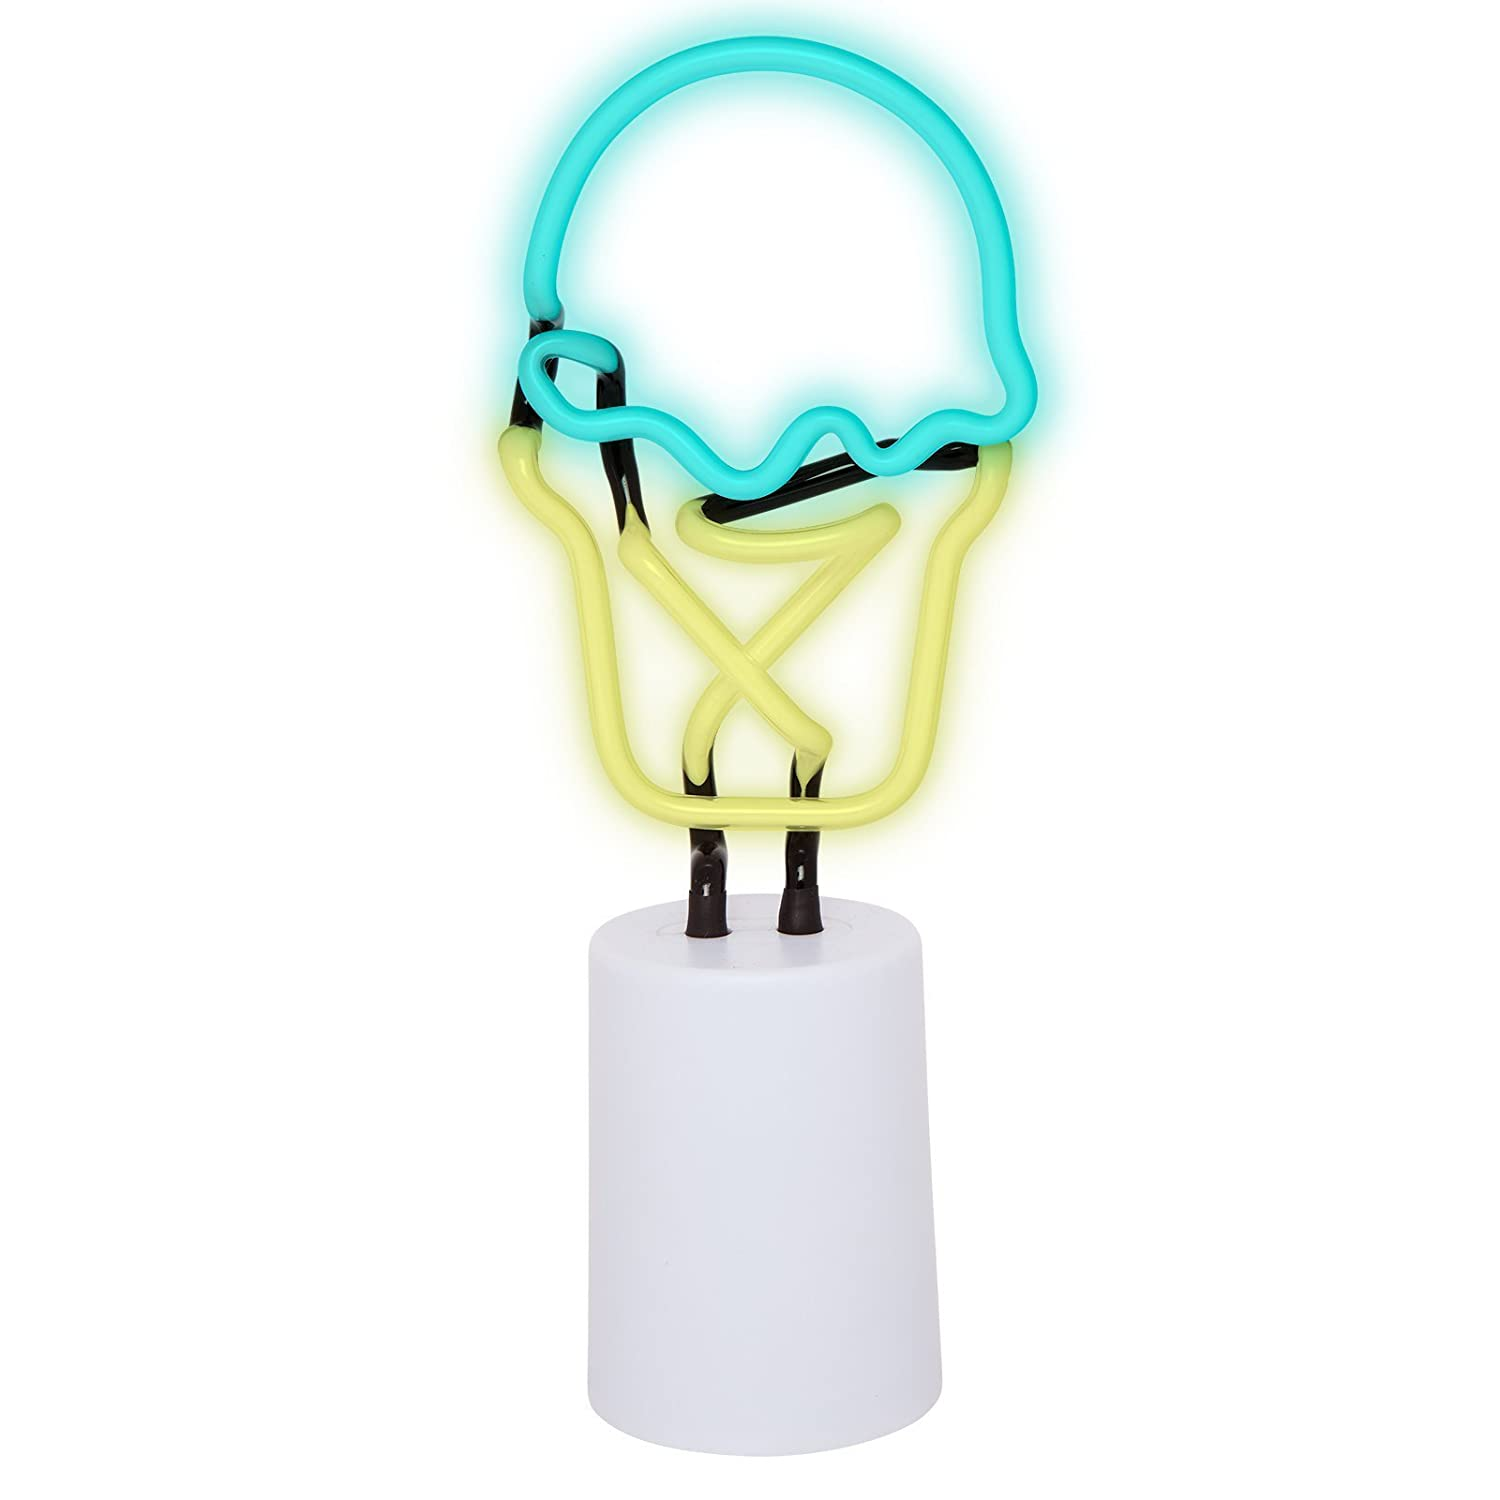 Sunnylife Indoor Decorative Neon Light Figurine Tube Desk Lamp with Adjustable Dimmer S8ONESIC